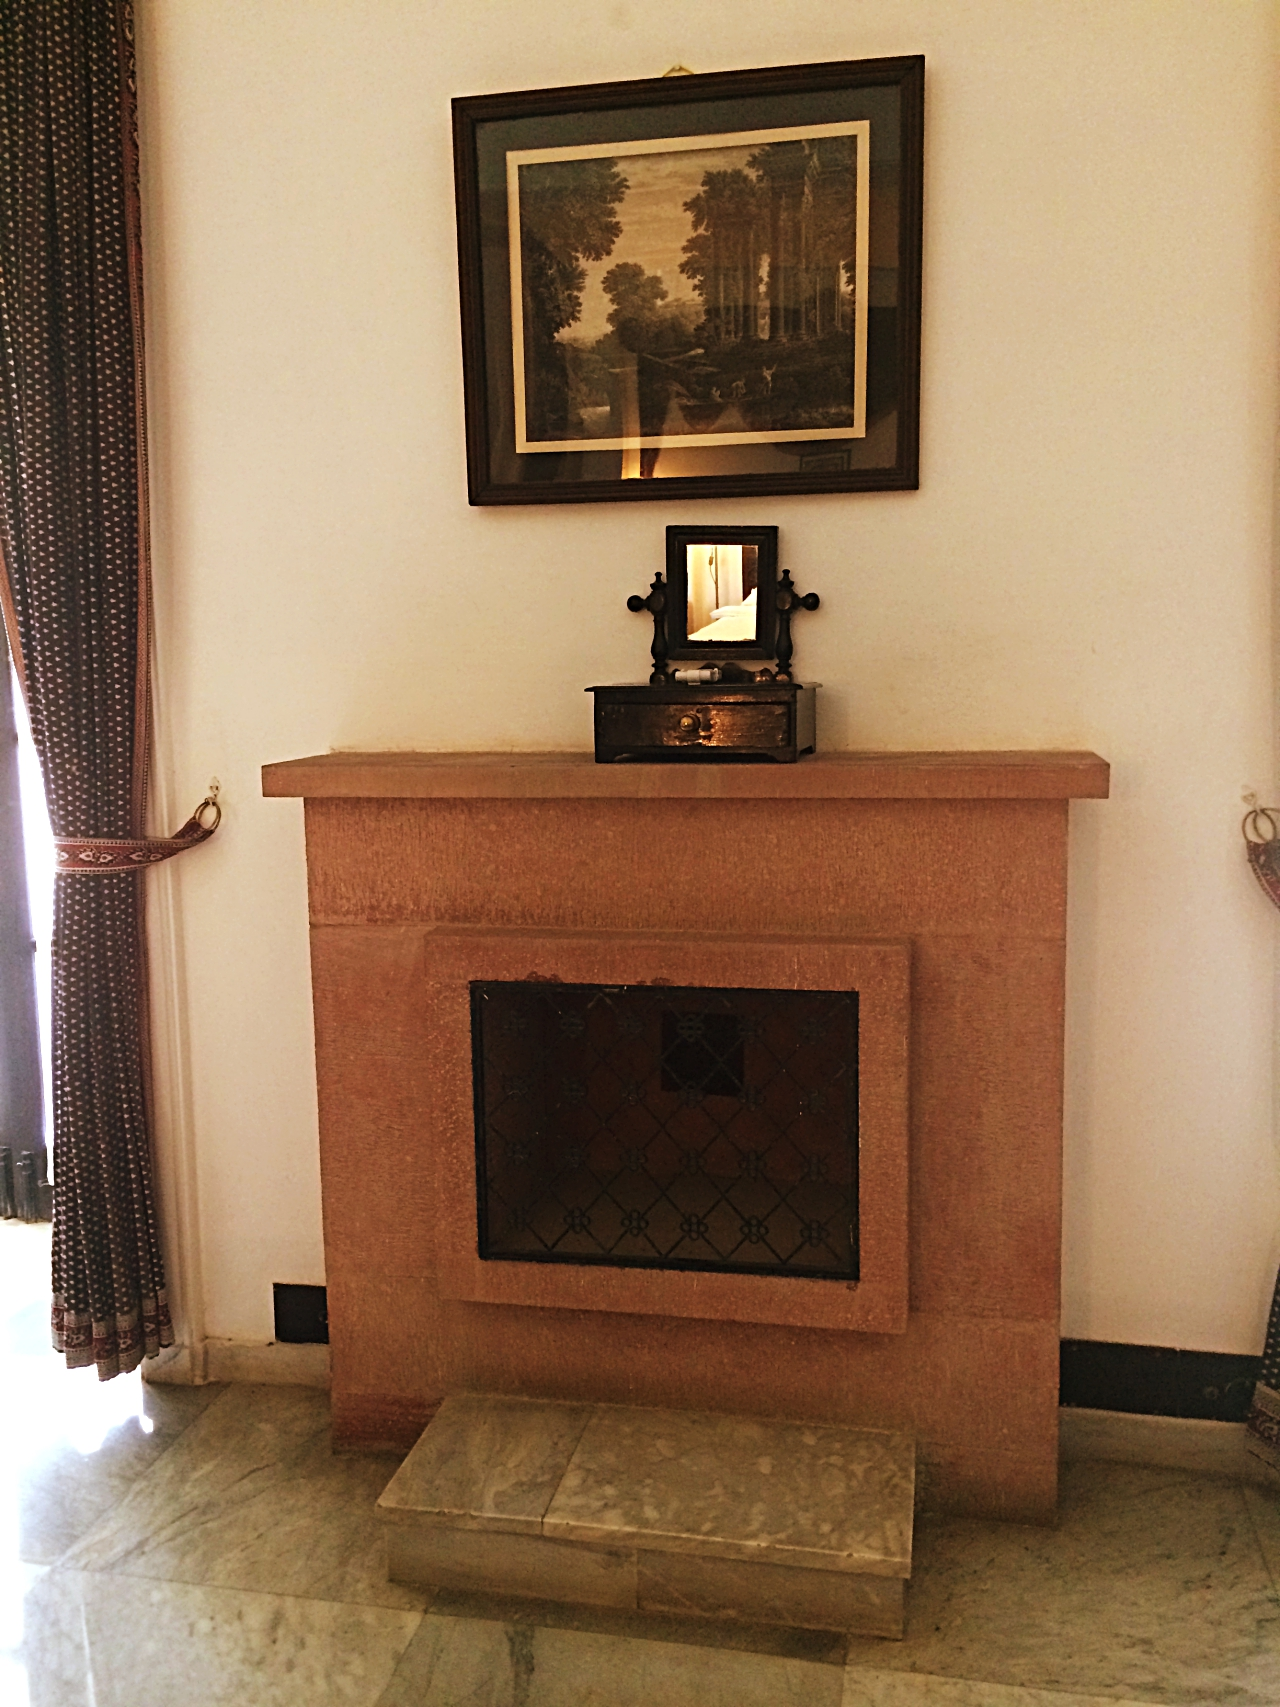 Jhira Bagh Palace Fireplace